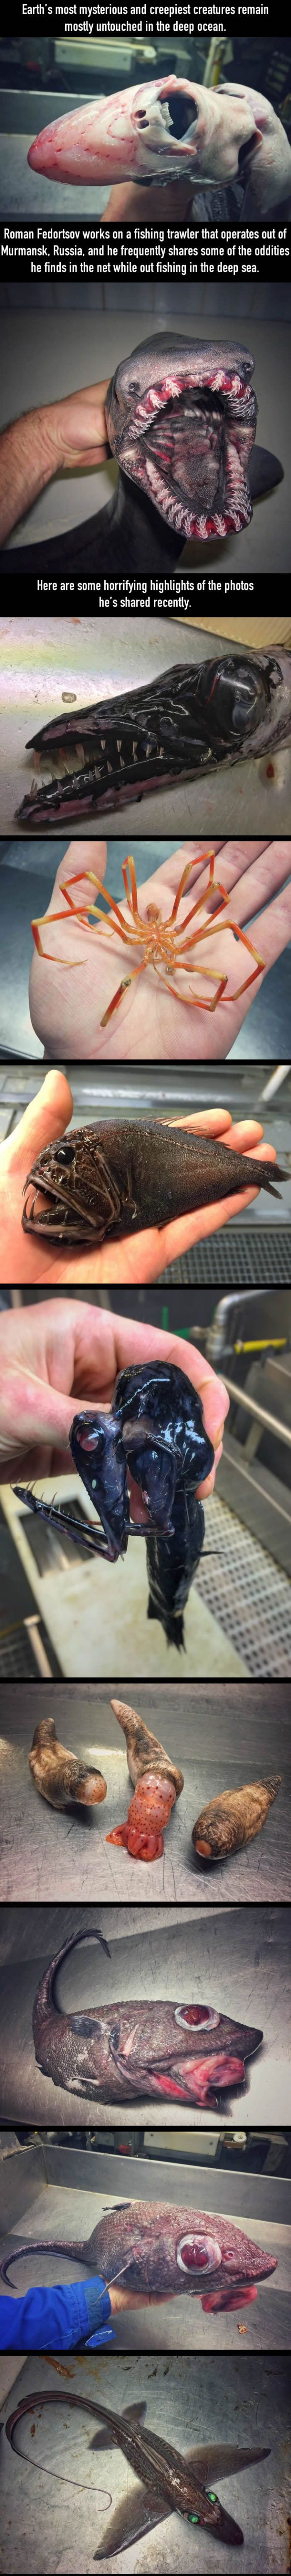 We've only discovered a tiny fraction of the deep sea creatures.<<<And I'm incredibly concerned...